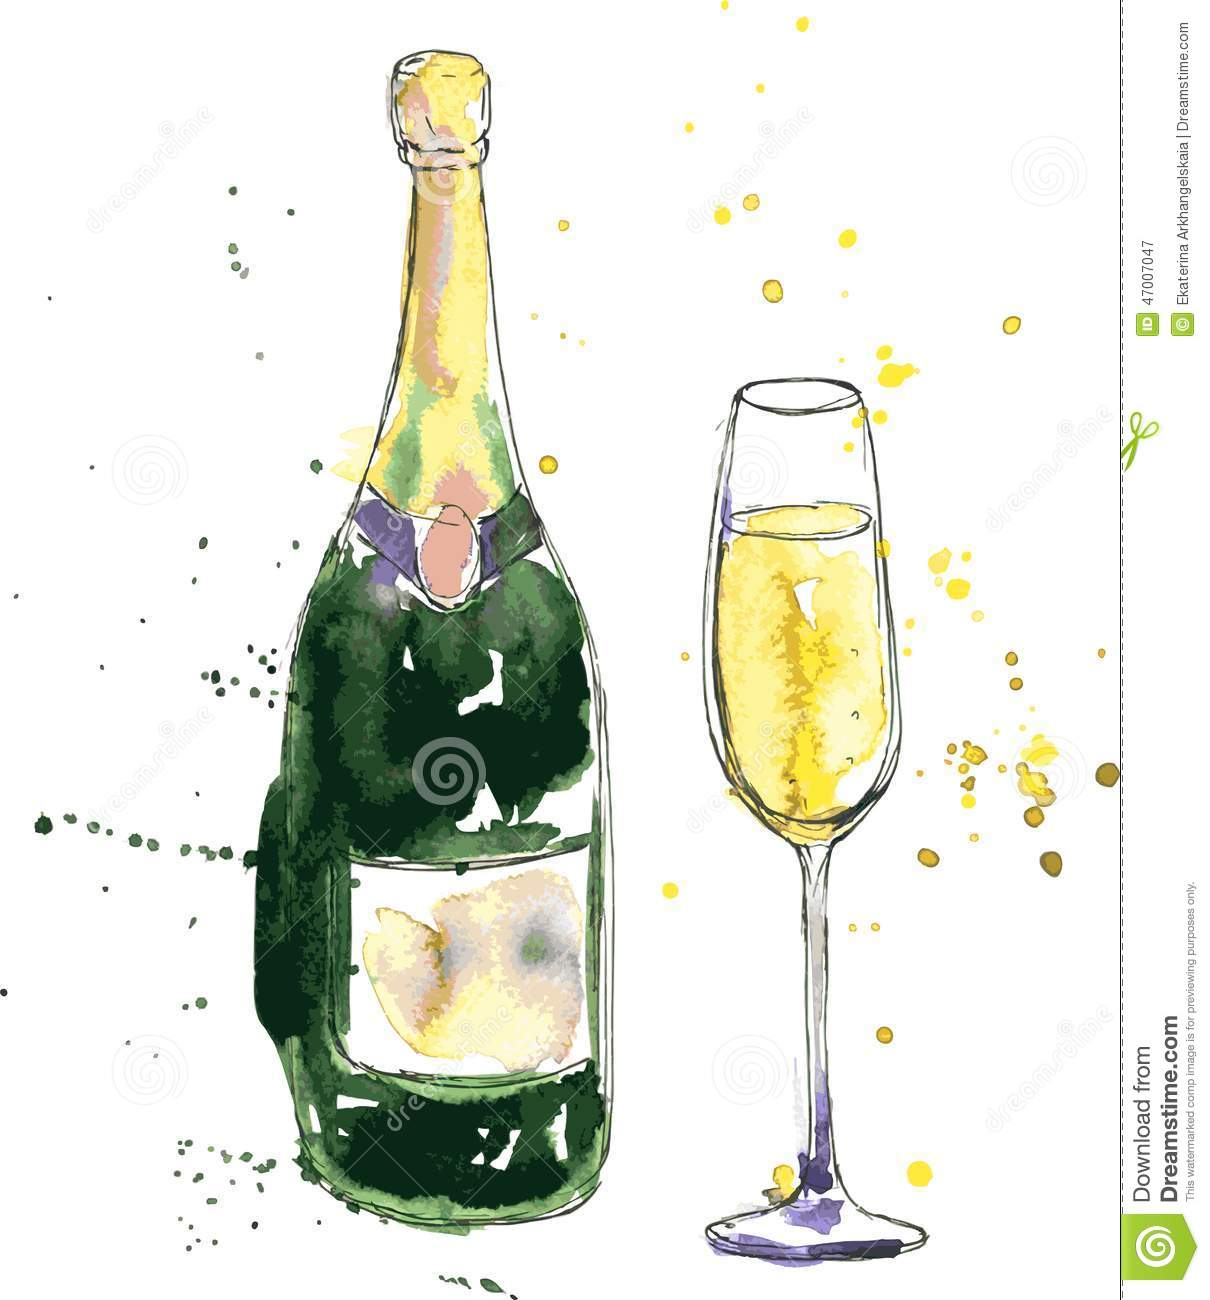 Glass vanity table set - Champagne Bottle And Glass Stock Vector Image 47007047